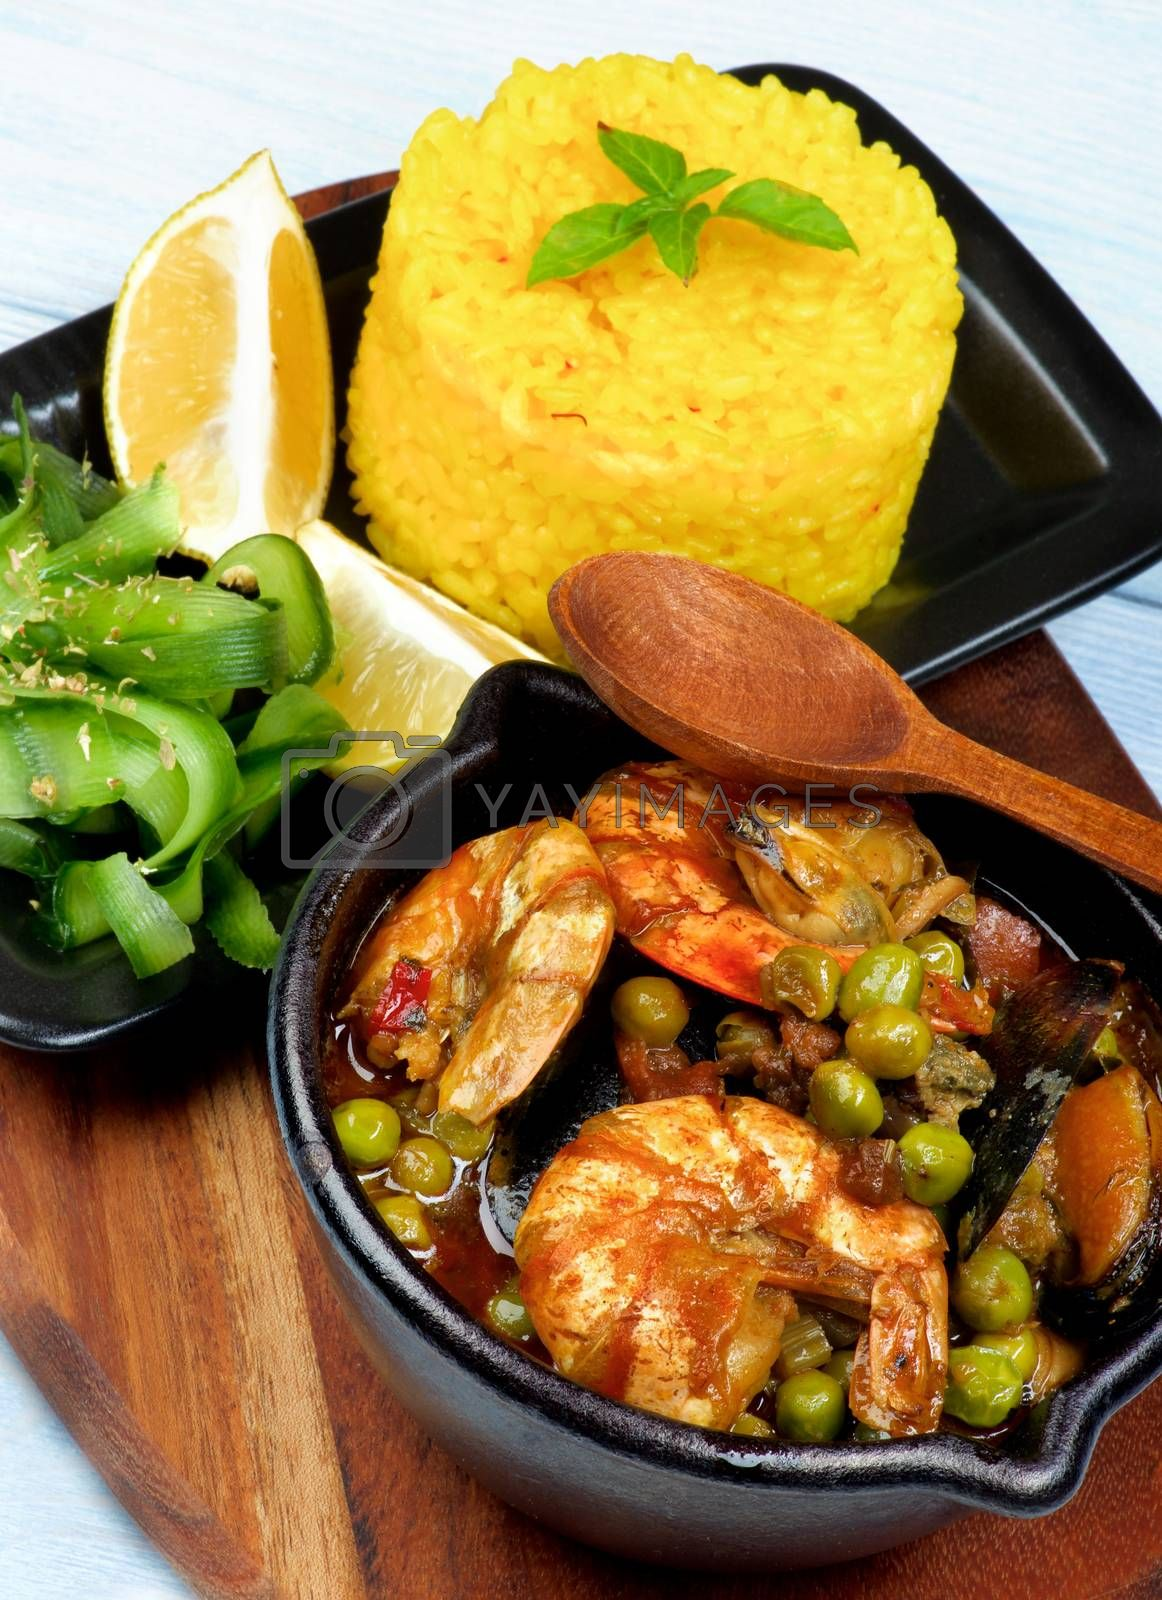 Delicious Seafood Curry with Saffron Rice, Cucumber Salad  and Lemon Served on Board closeup on Wooden background. Focus on Foreground